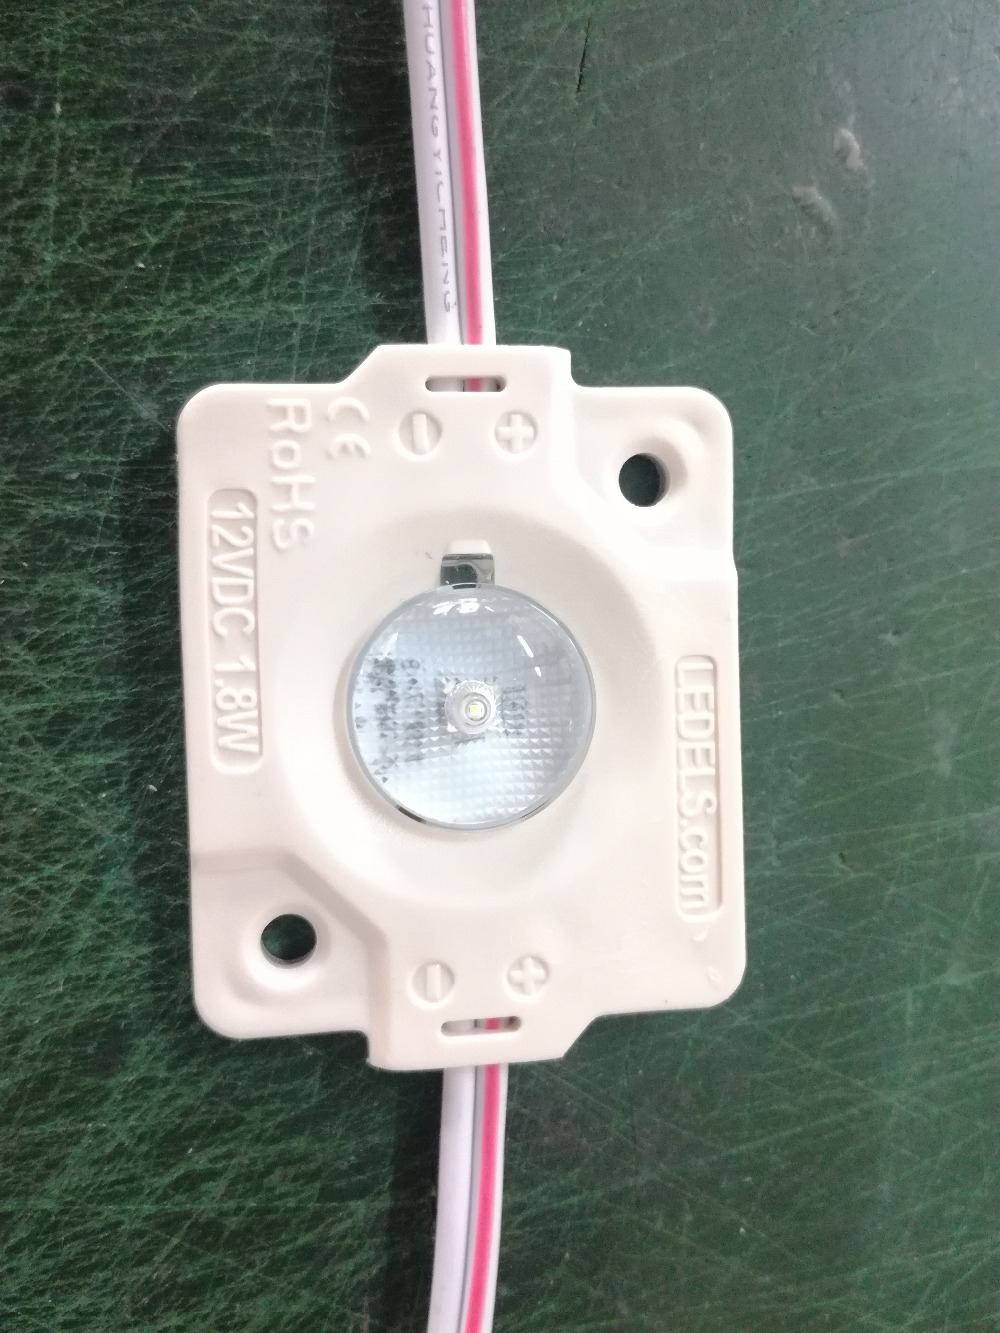 LED 12v 1.8watt 200 lm led module backlights for sign boxes 175 degrees beam angle with even illumination 5 year warranty ip65